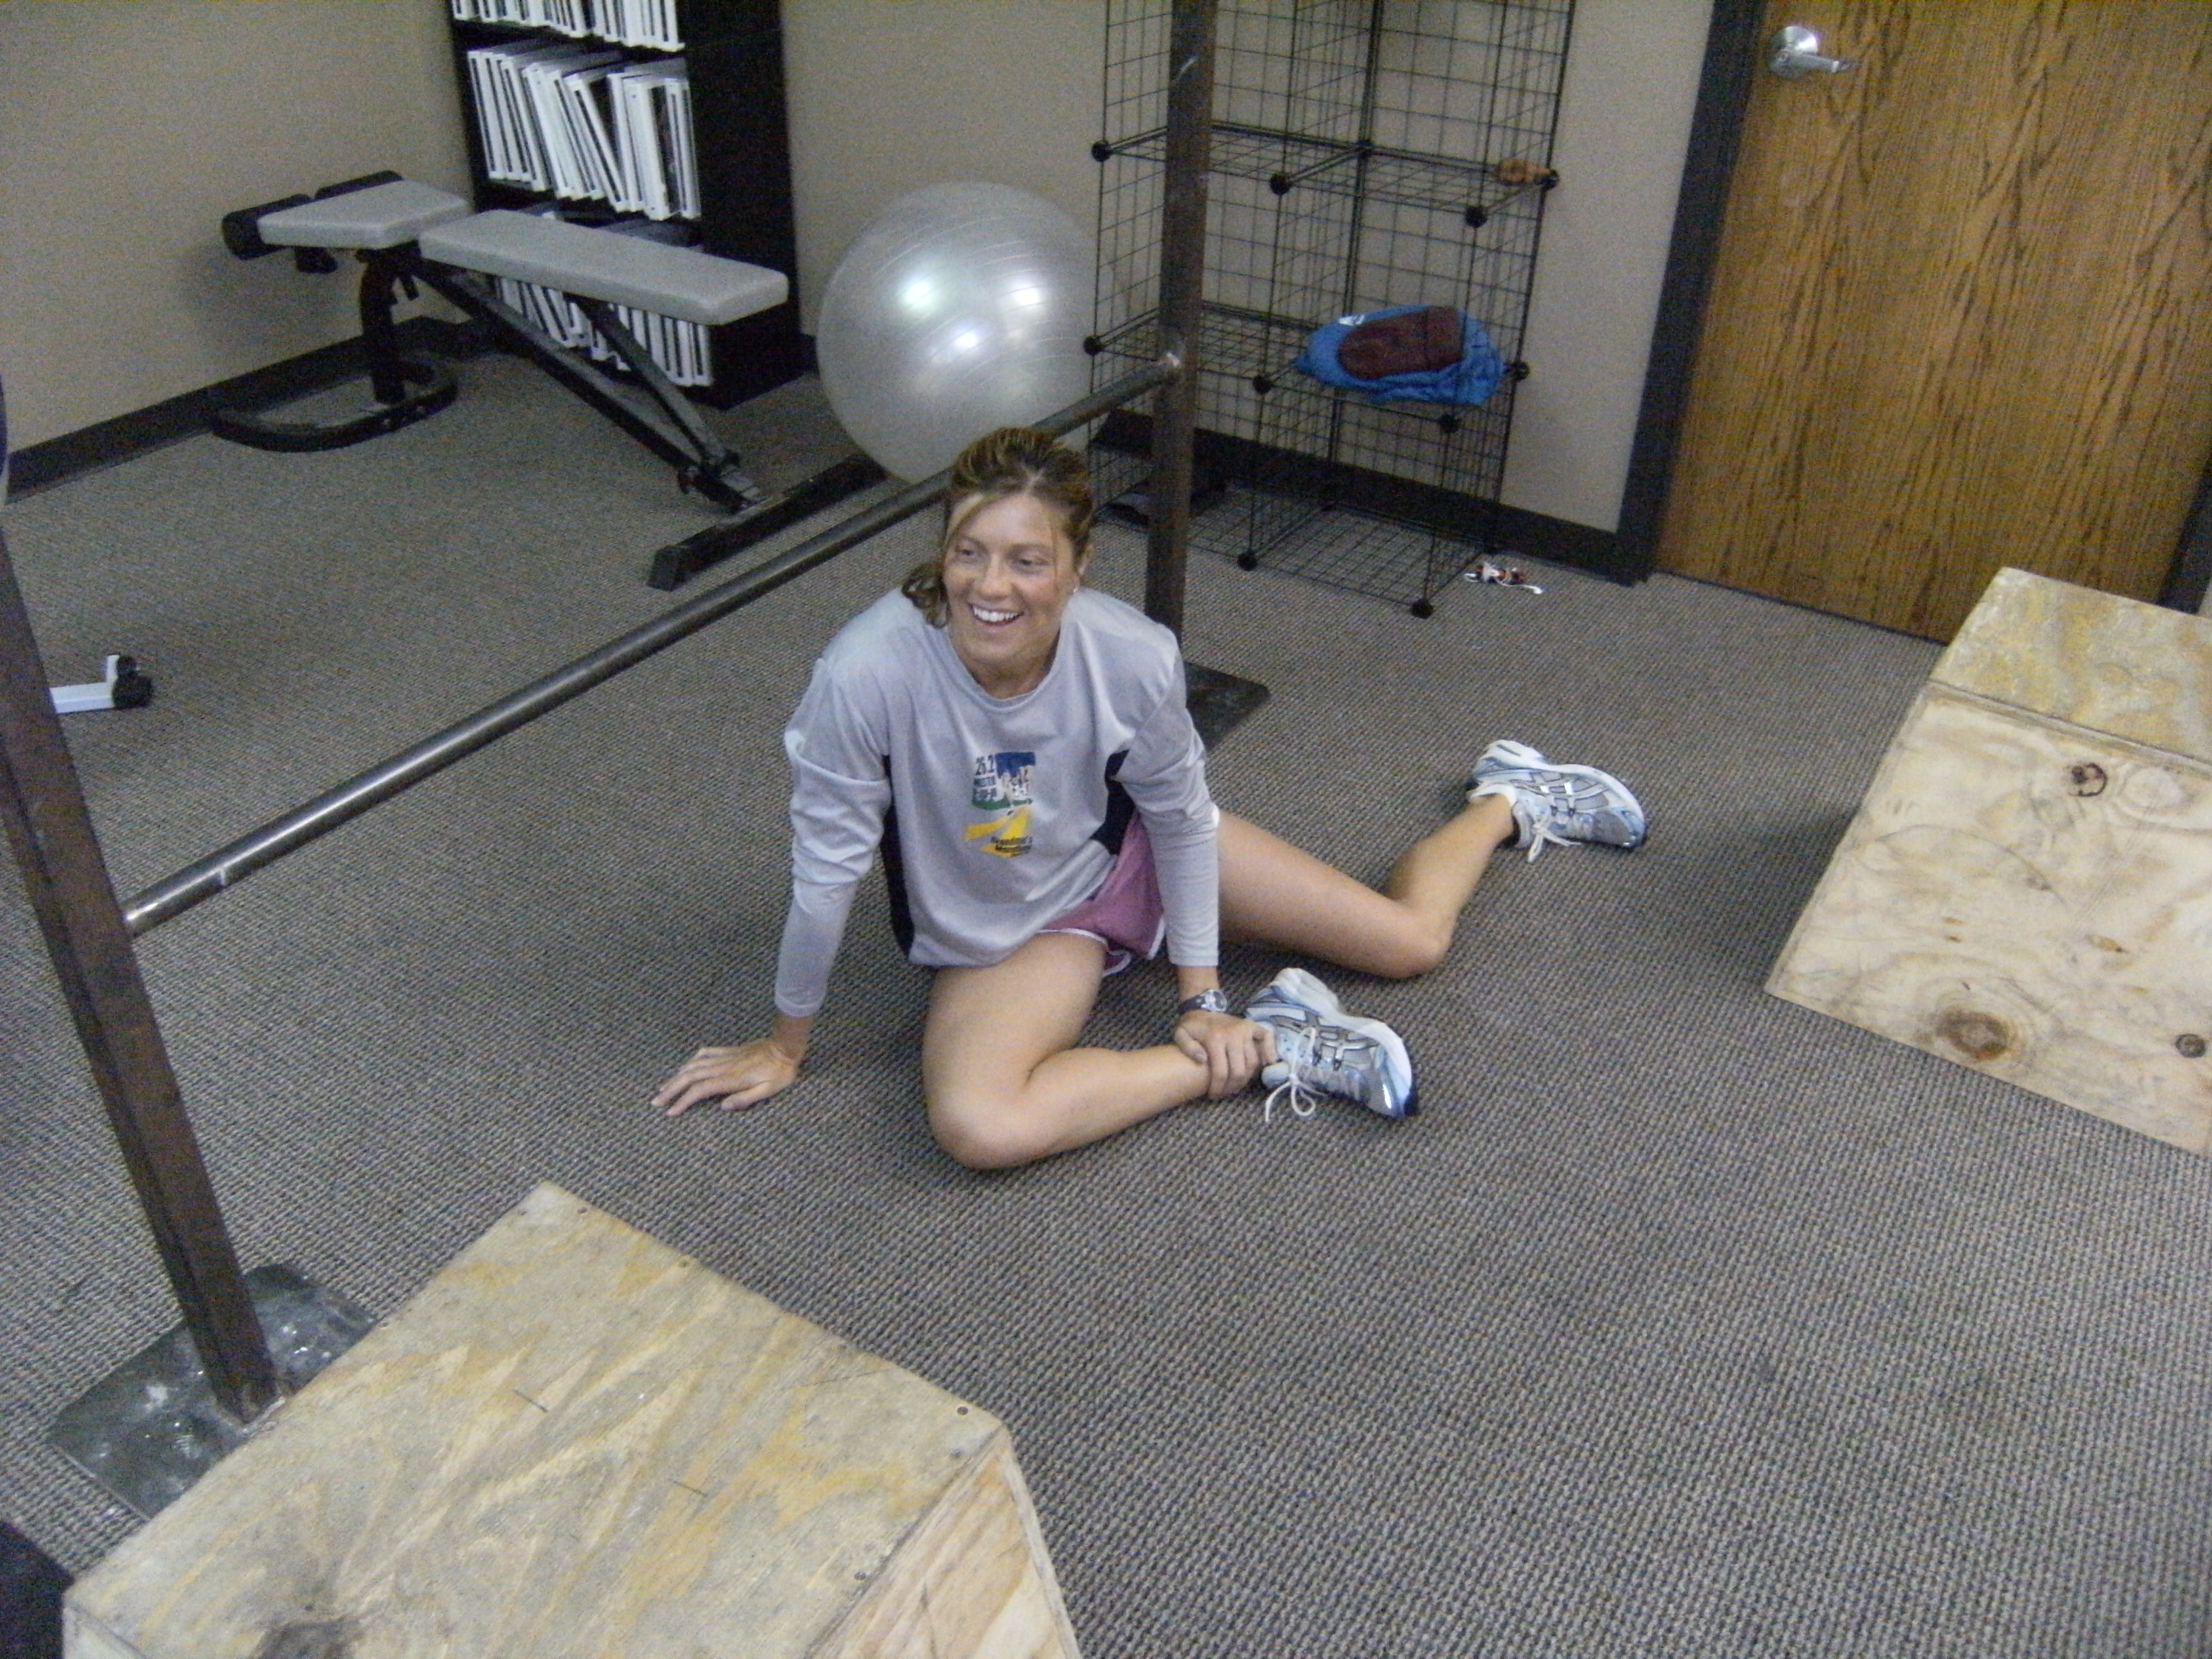 R.I.C.E. (Rest, Ice, Compress, Elevate) best way to go pre and post injury